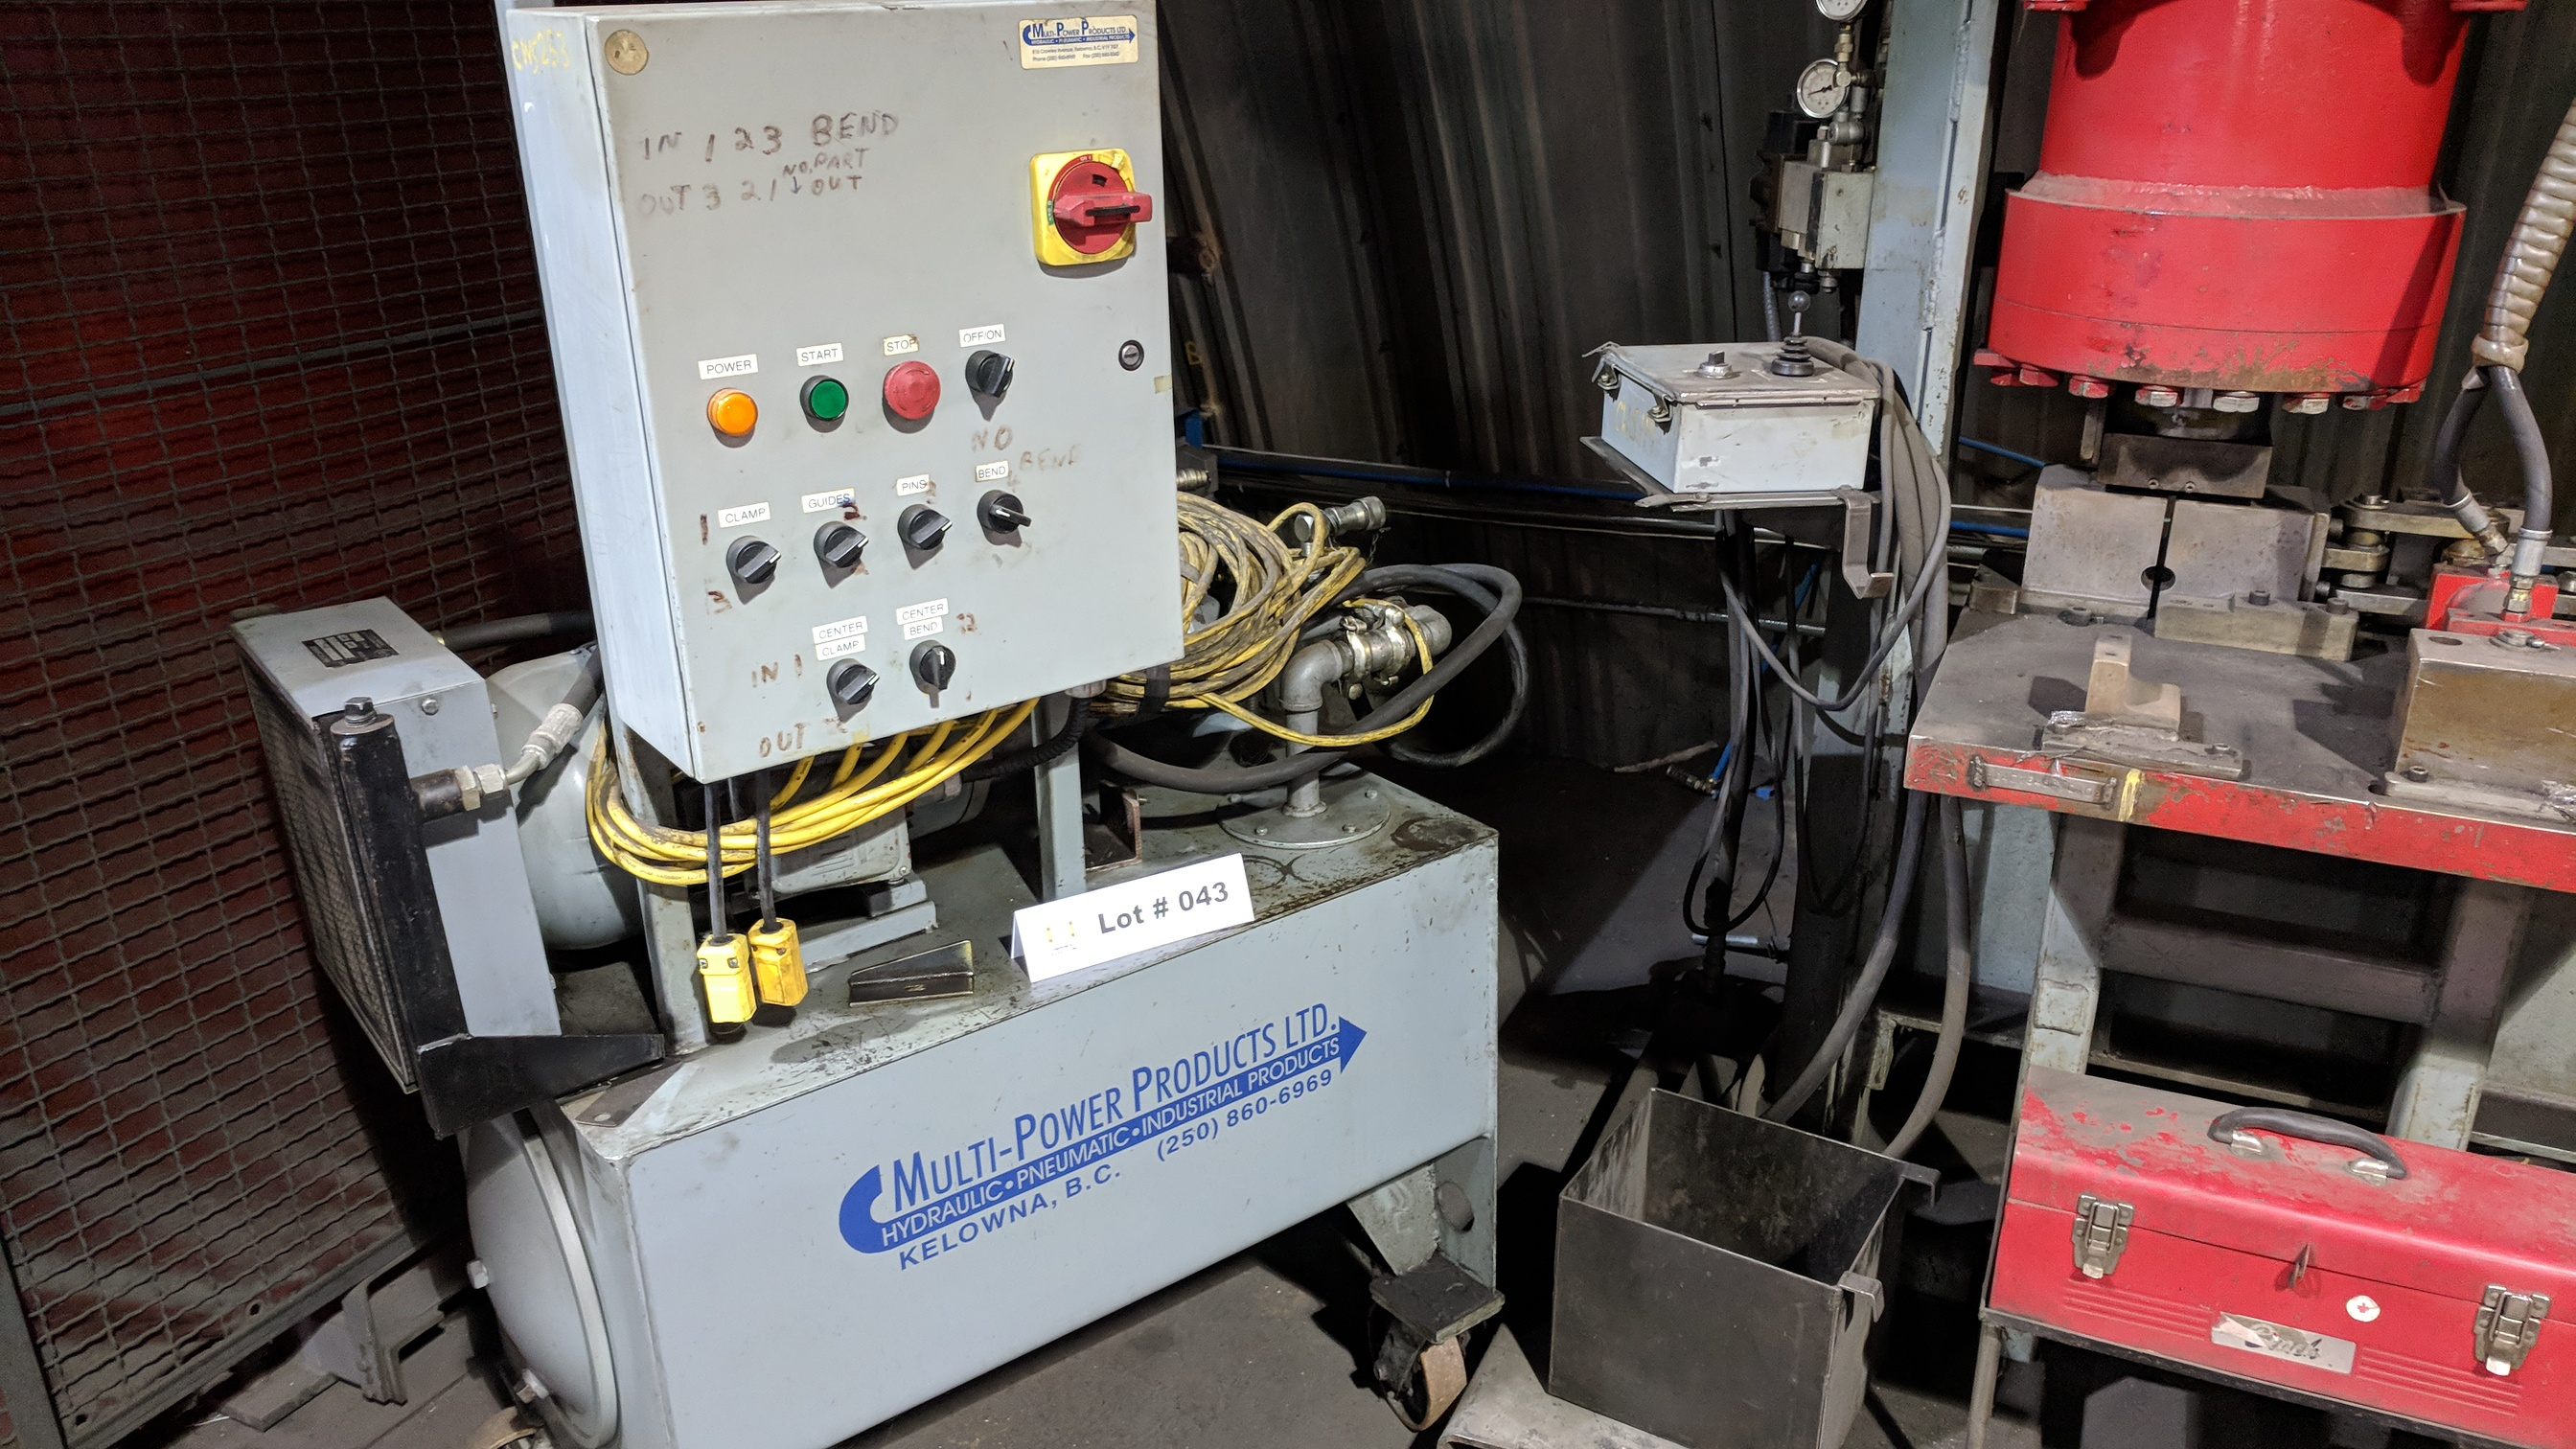 CROWN HEAVY DUTY HYDRAULIC SHOP PRESS WITH MULTI POWER PRODUCTS POWER PACK, S/N N/A (CI) - Image 3 of 5